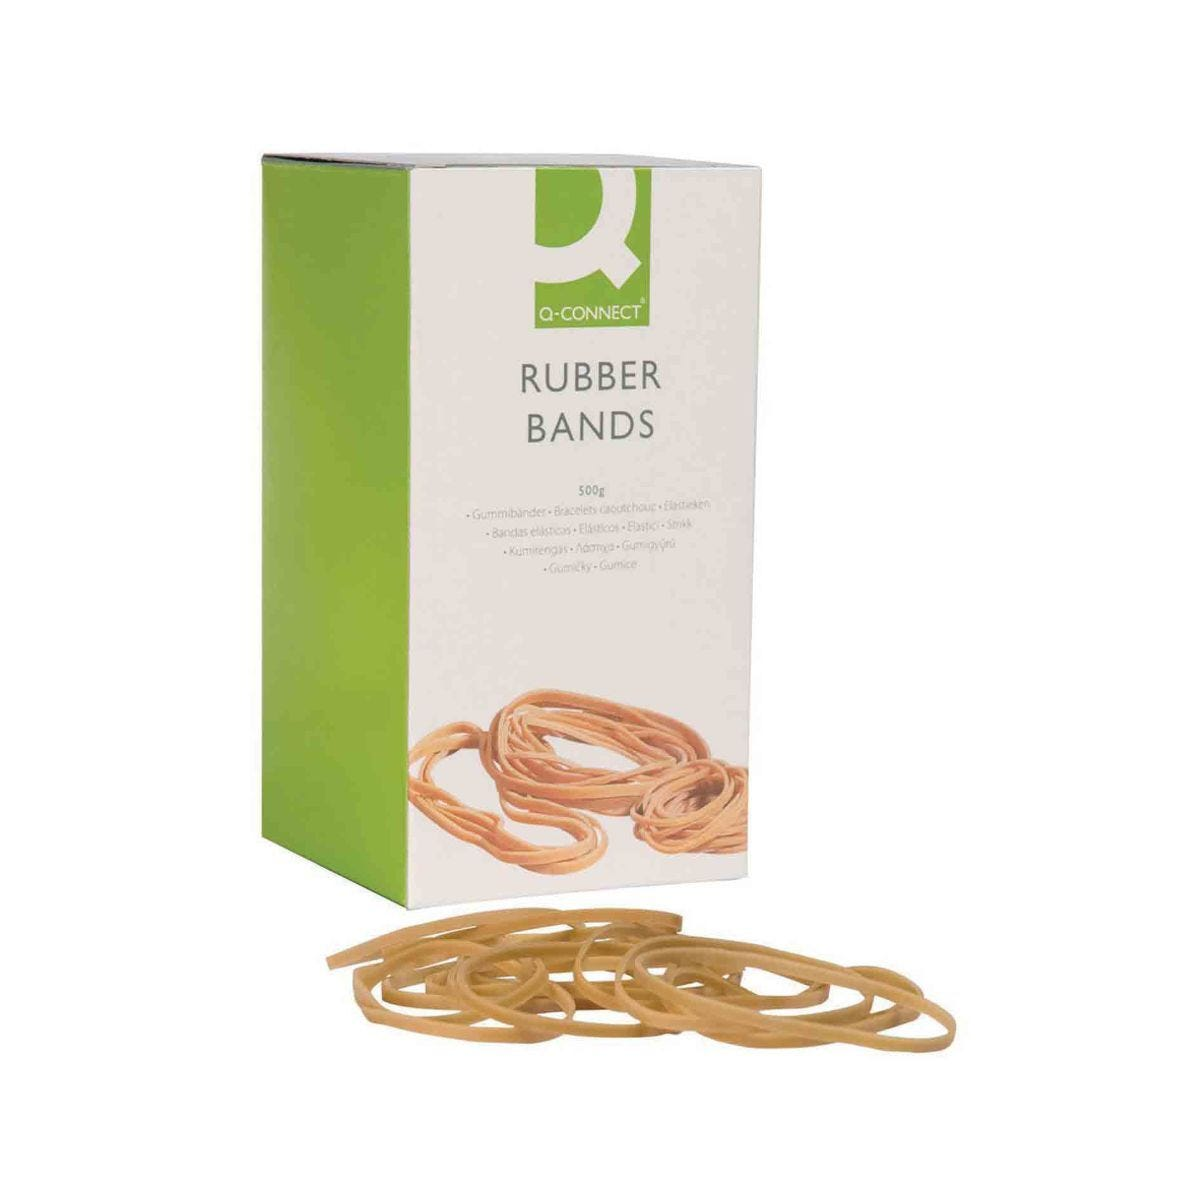 Q-Connect Rubber Bands No. 69 152.4 x 6.3mm 500g